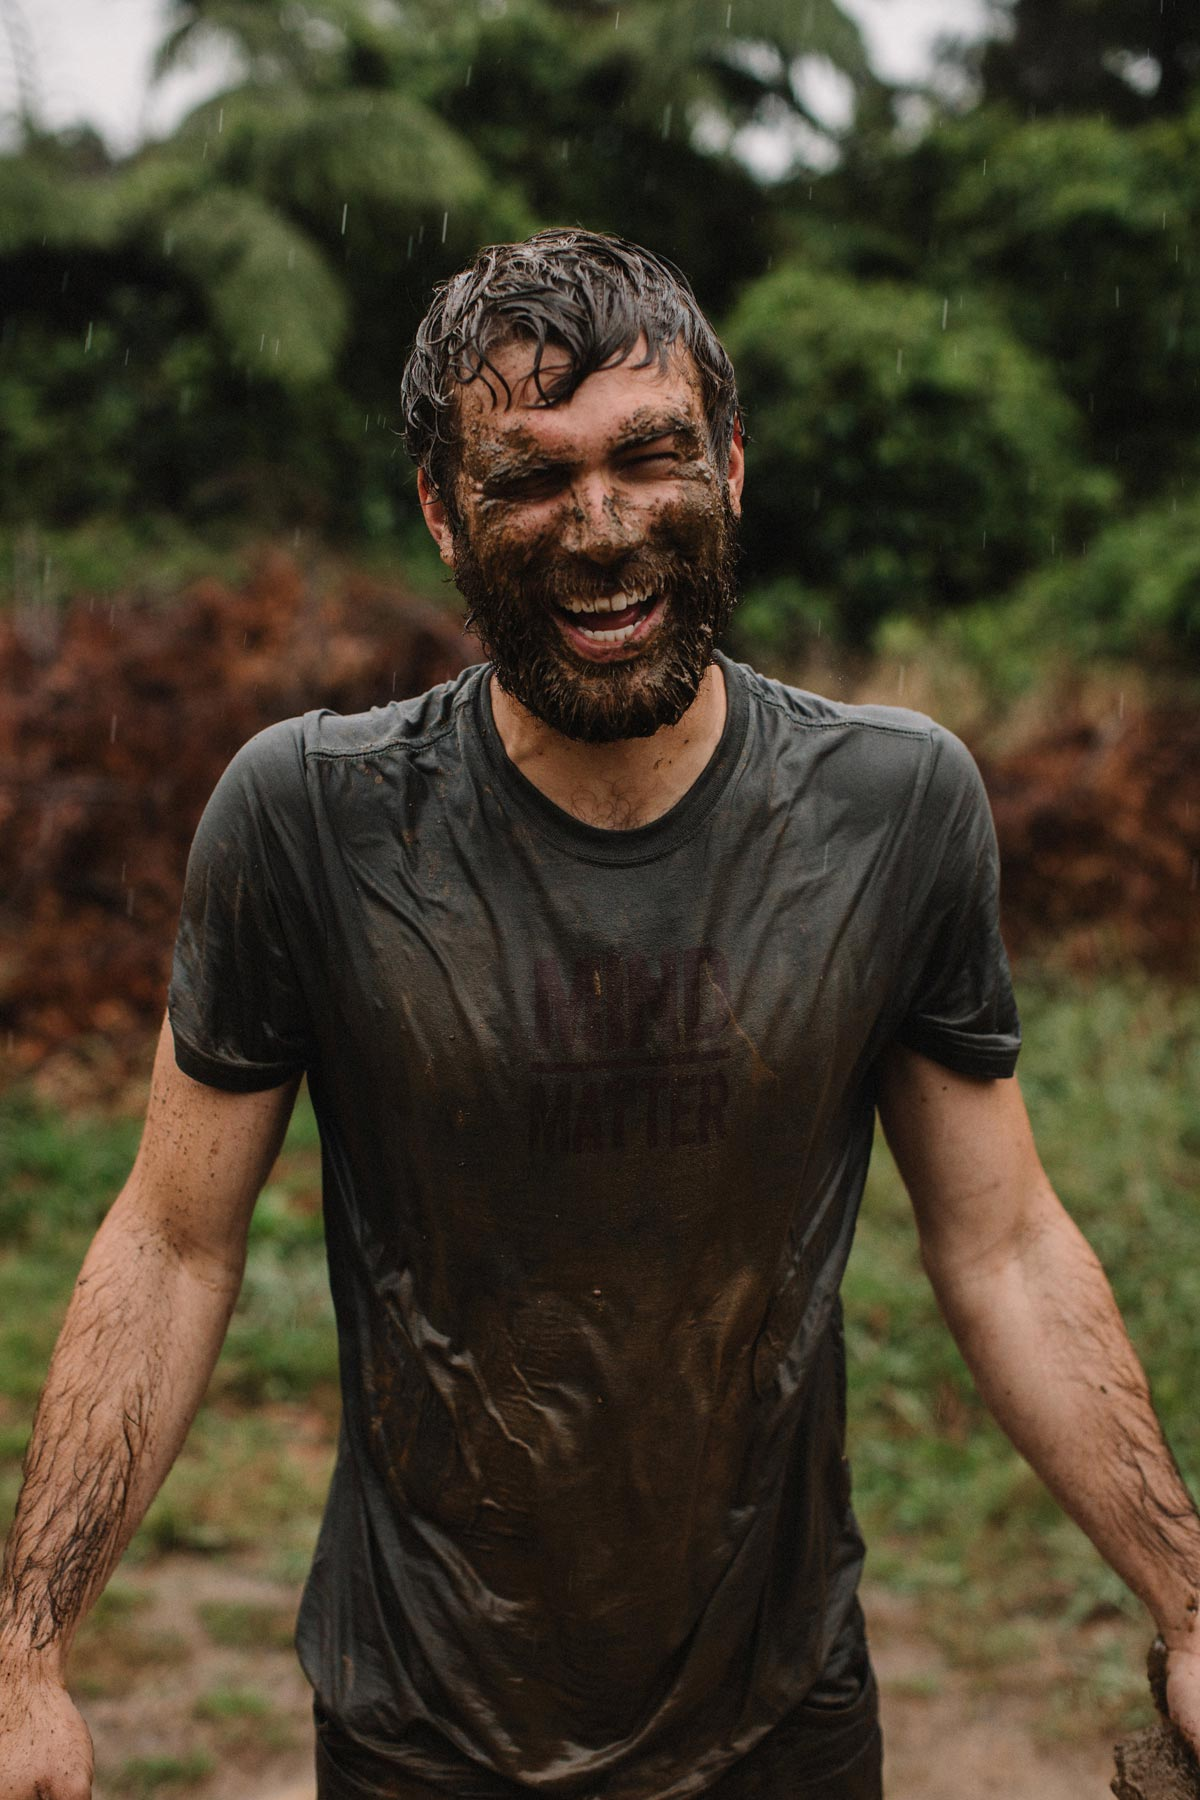 Photo by Greg Balkin of man caked in mud laughing in the rain